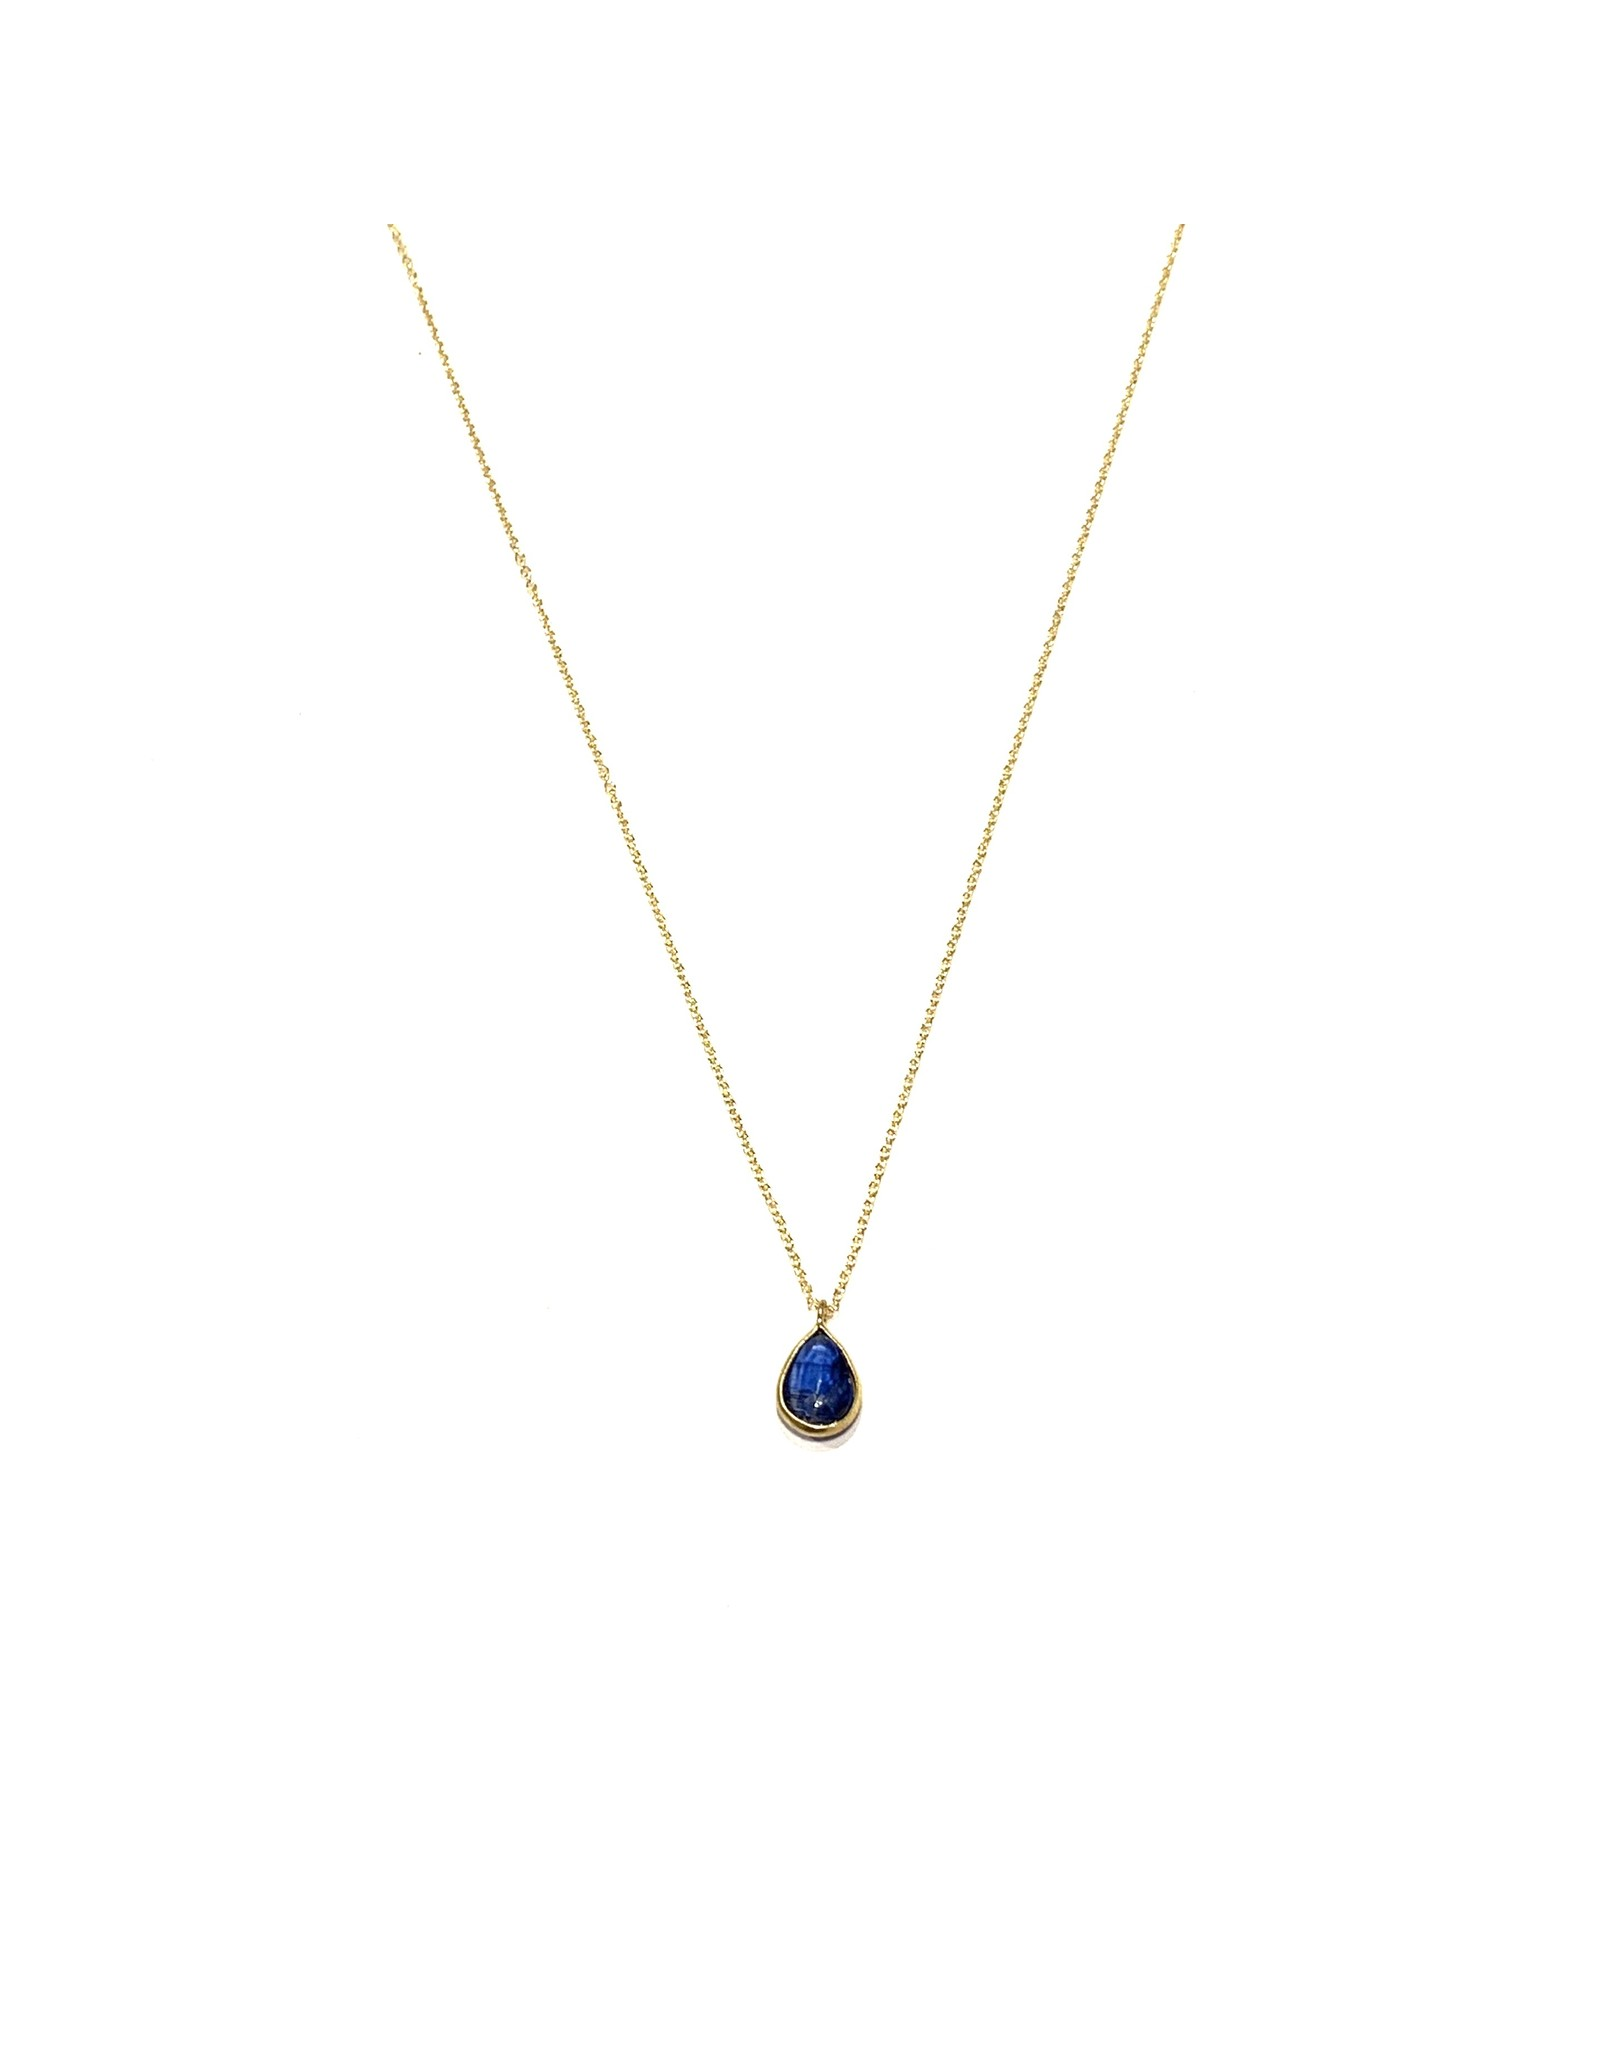 Bo Gold Necklace - Gold - Kyanite